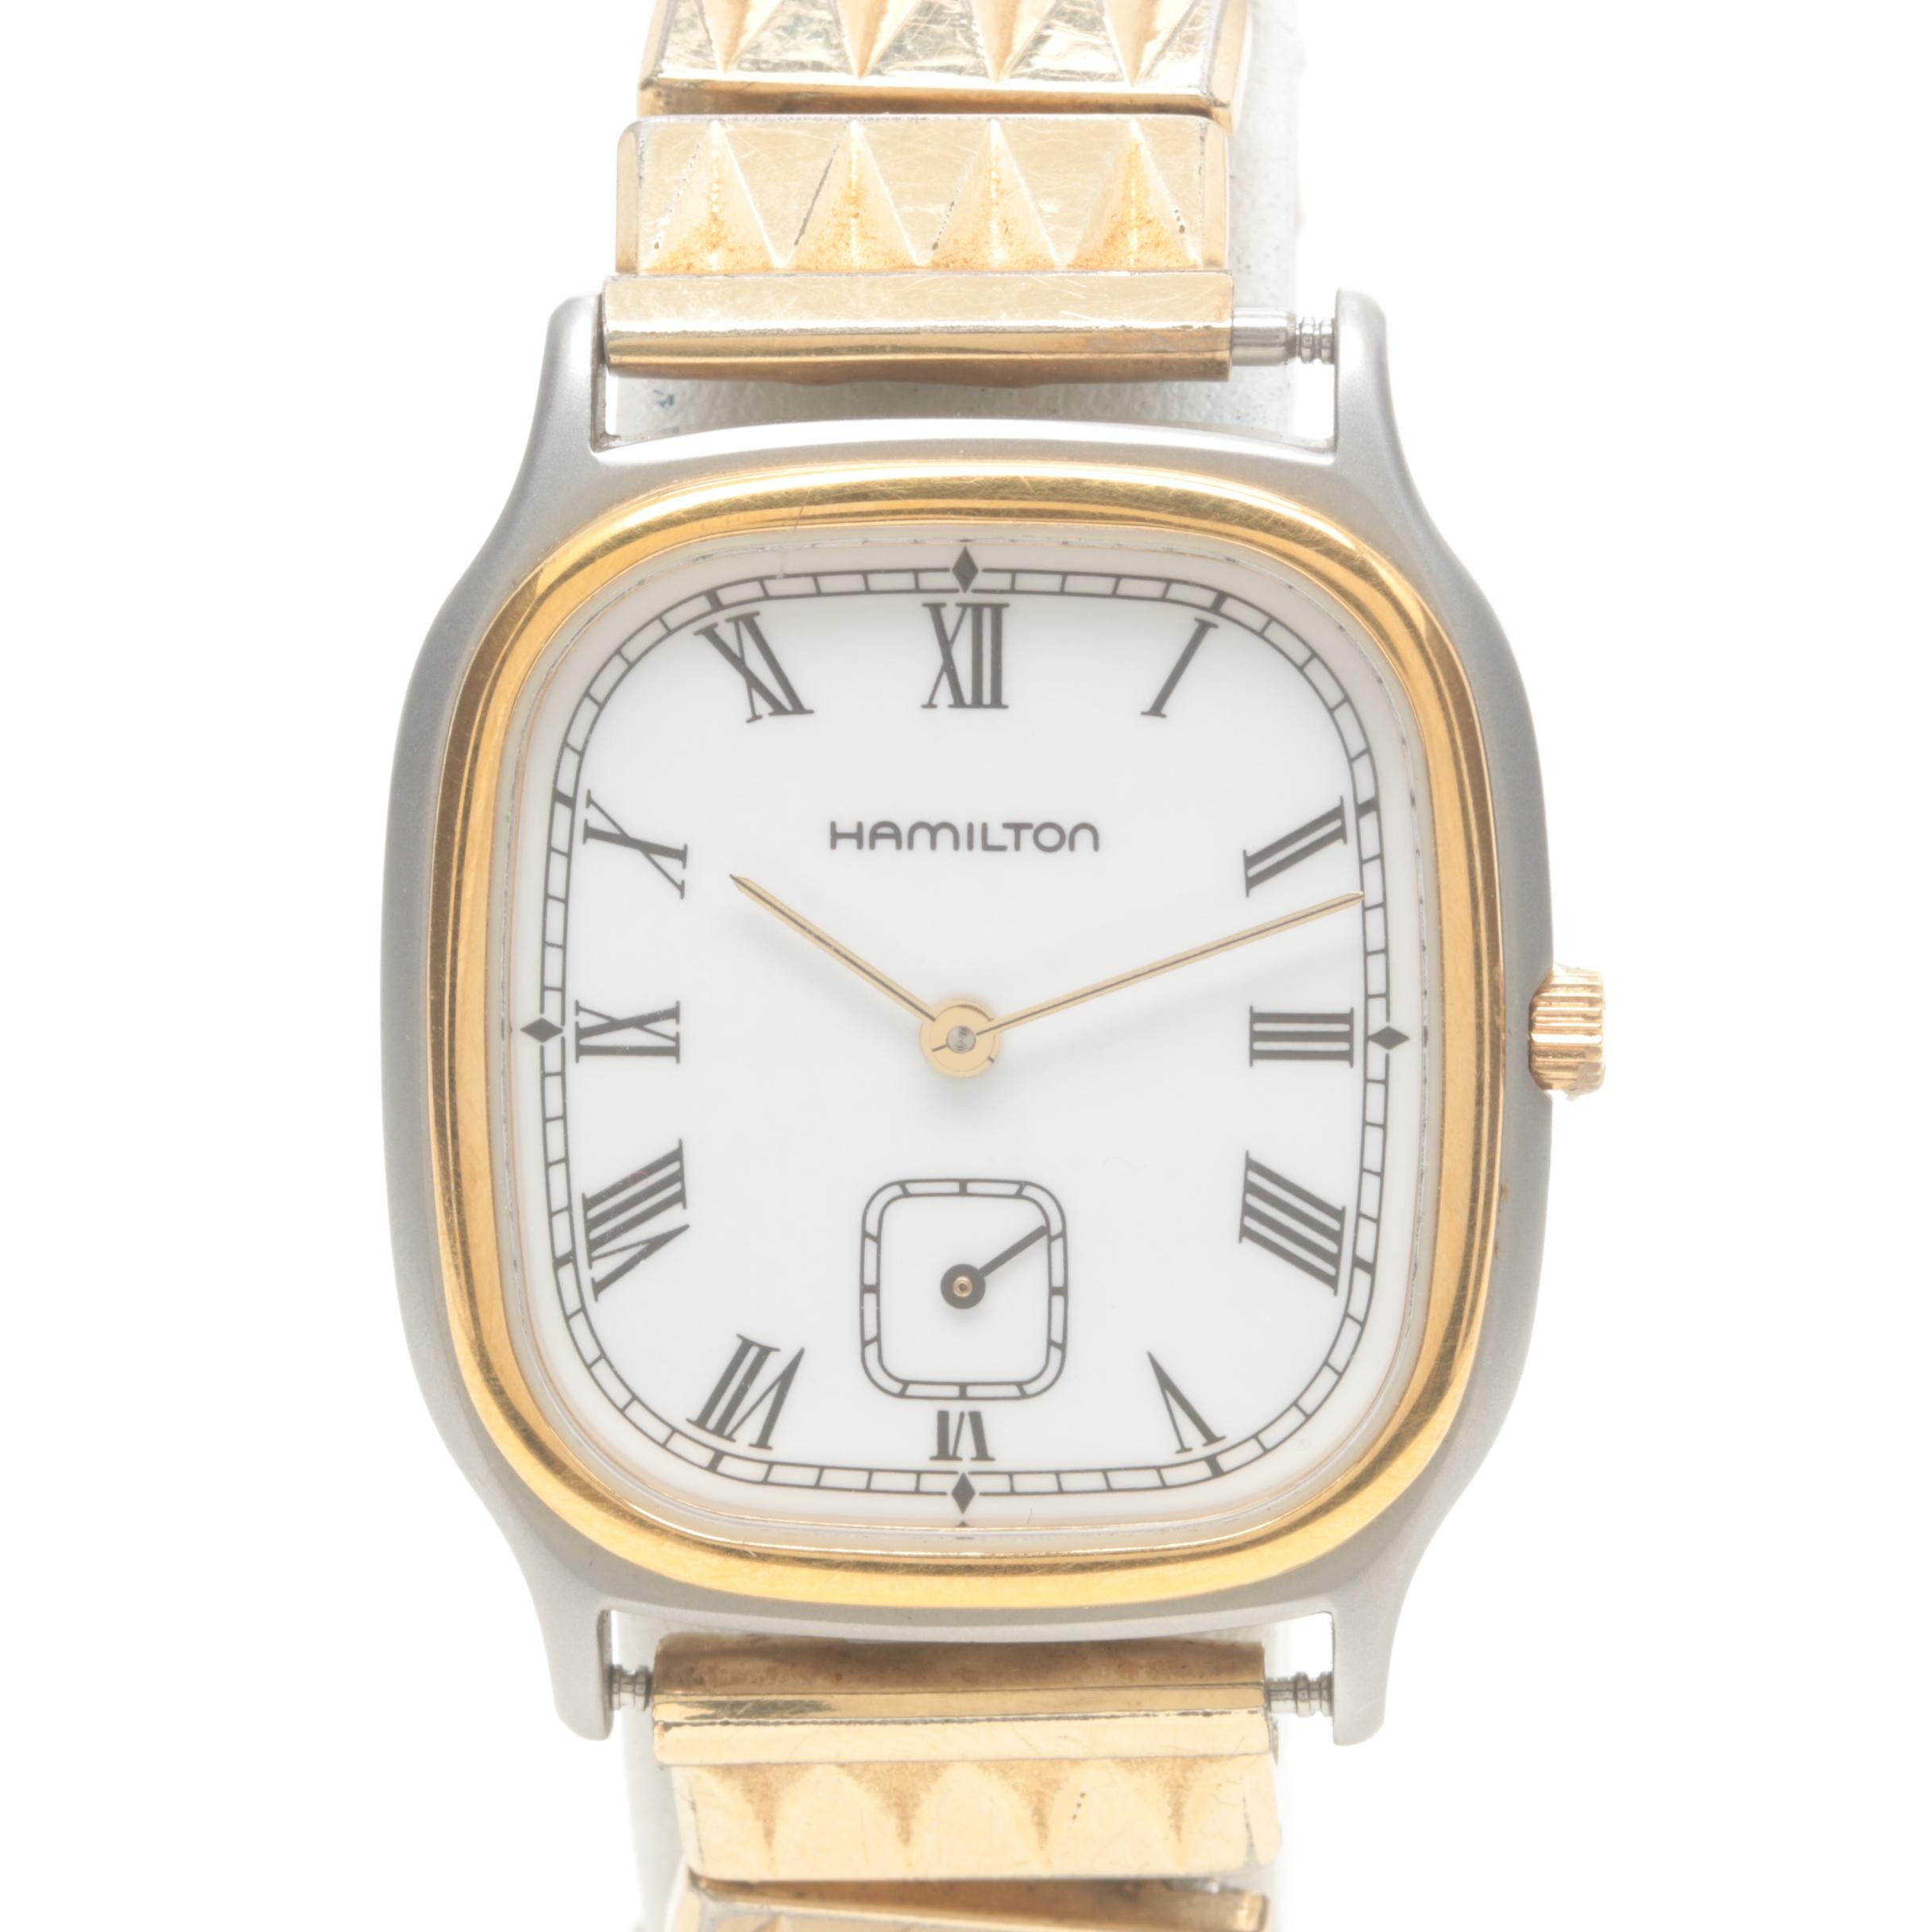 Hamilton Gold Tone Wristwatch with Silver Tone Accents